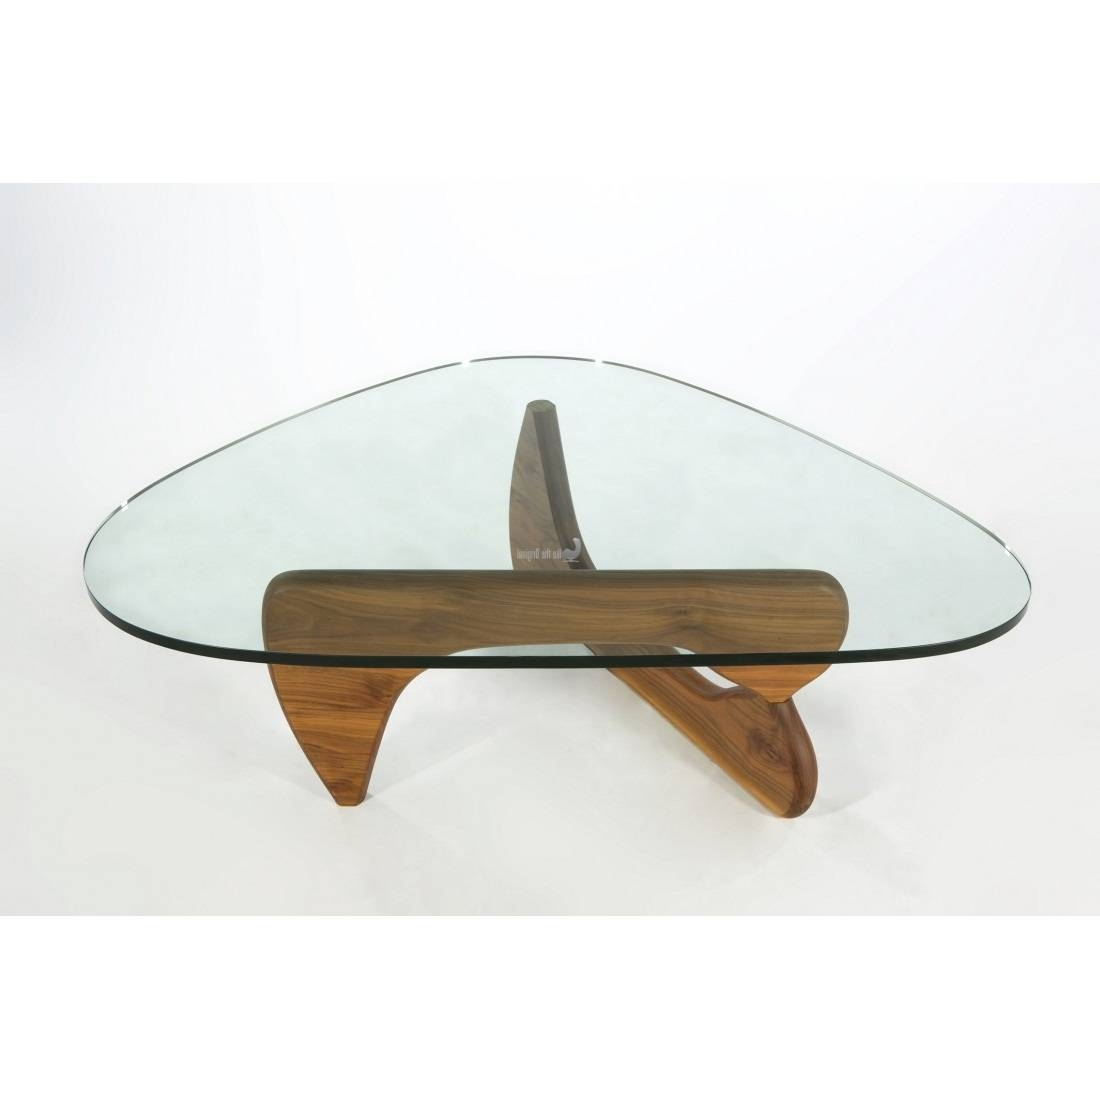 Small Glass Coffee Table Modern - Amazing Home Design throughout Small Glass Coffee Tables (Image 13 of 15)